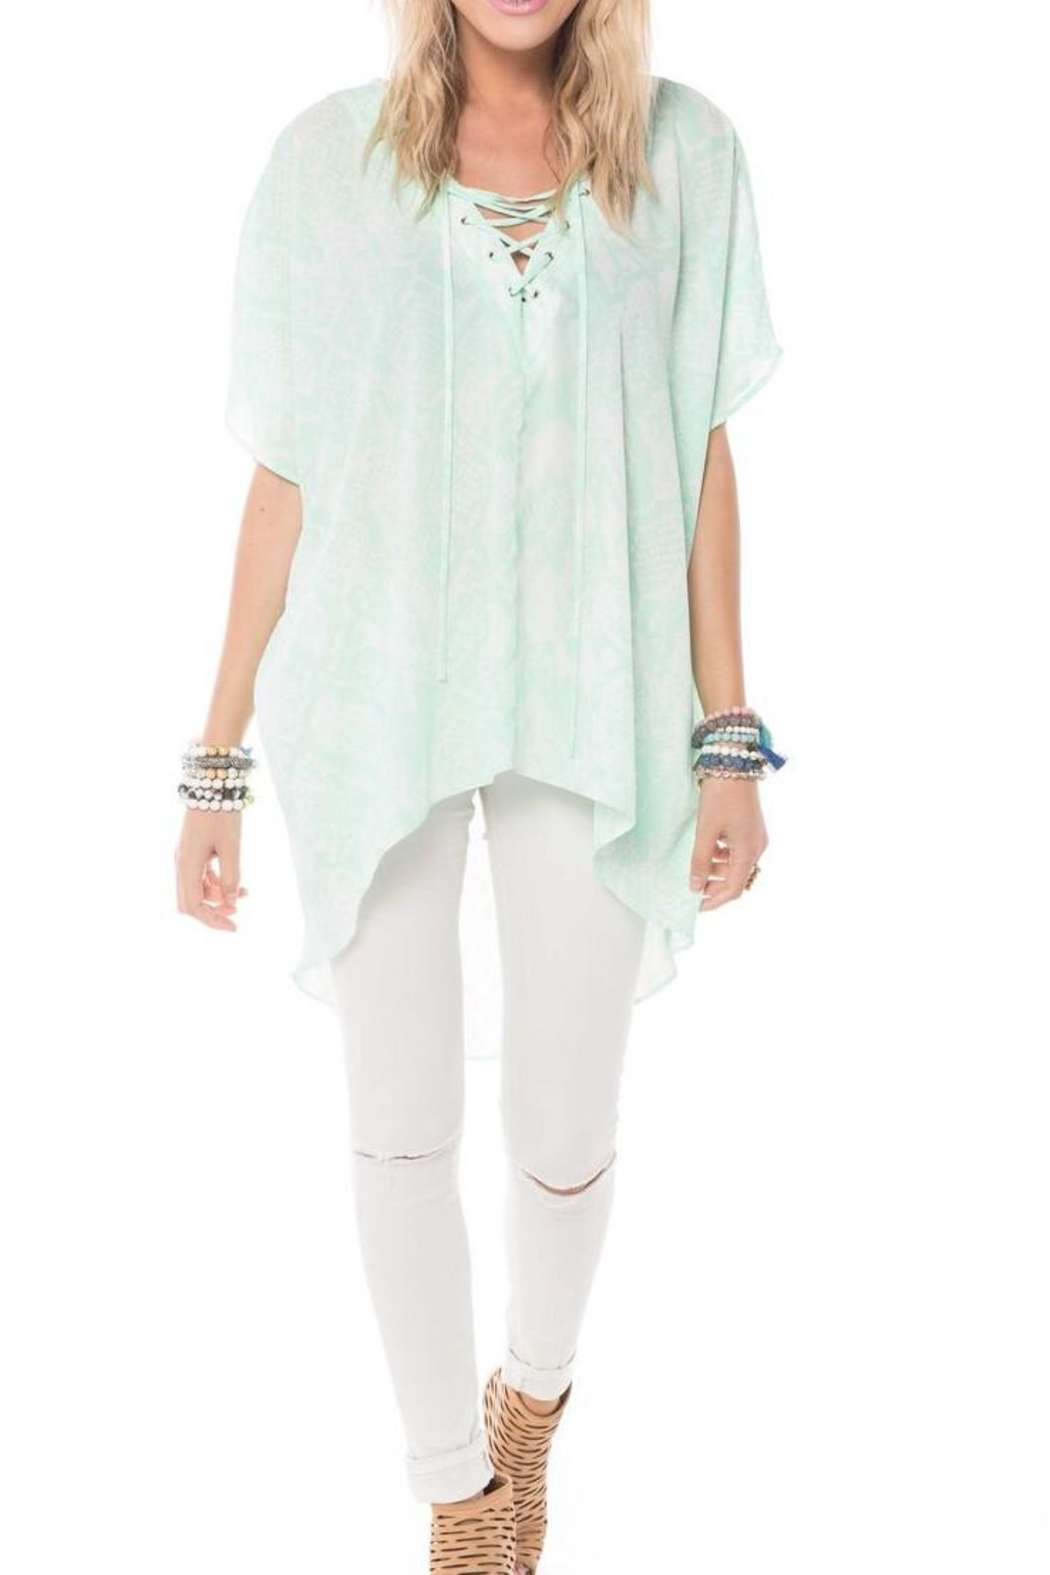 Buddy Love Mint Snake Tunic - Front Cropped Image